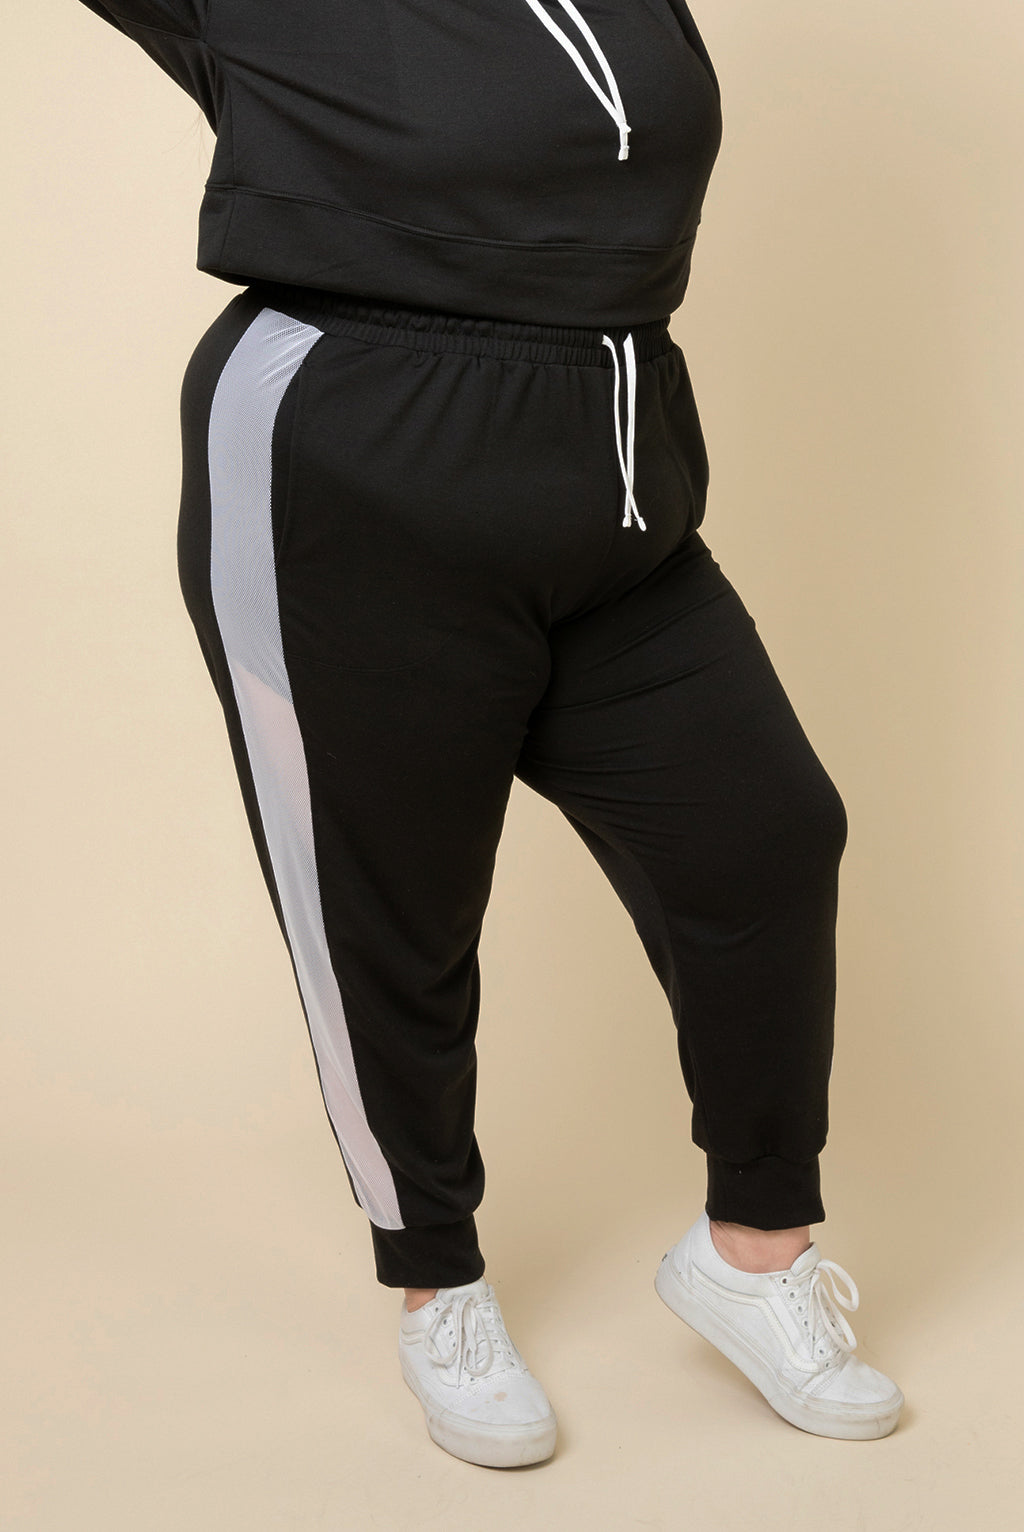 Superfit Jogger Pant - Black